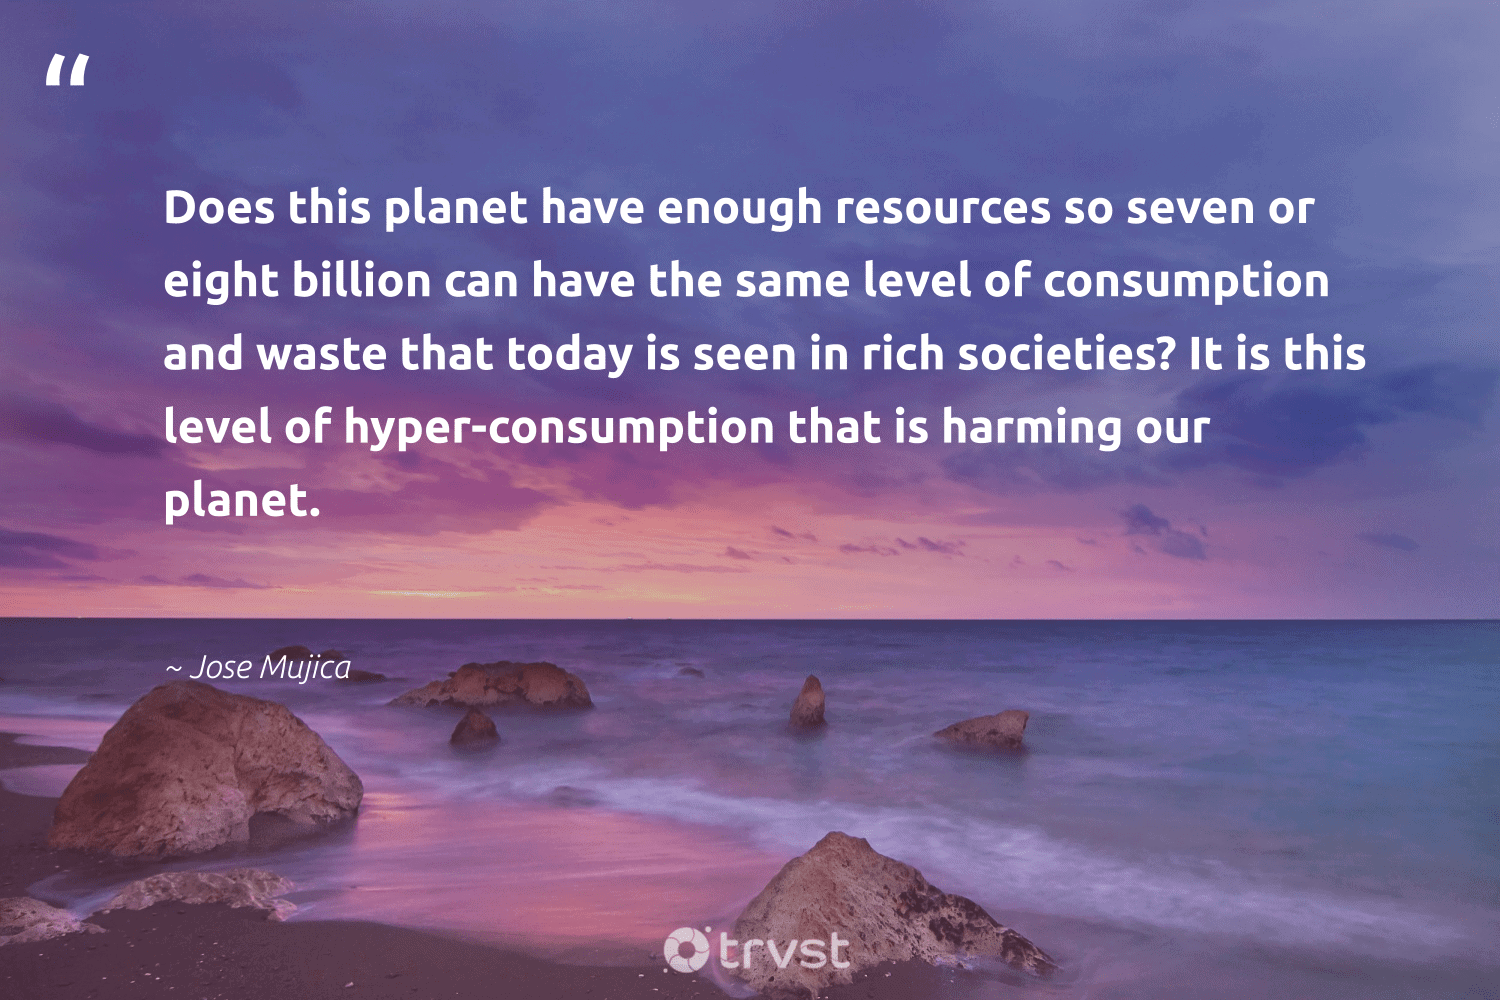 """""""Does this planet have enough resources so seven or eight billion can have the same level of consumption and waste that today is seen in rich societies? It is this level of hyper-consumption that is harming our planet.""""  - Jose Mujica #trvst #quotes #waste #planet #nature #wasteless #eco #thinkgreen #environment #ecoactivism #earth #ecoconscious"""